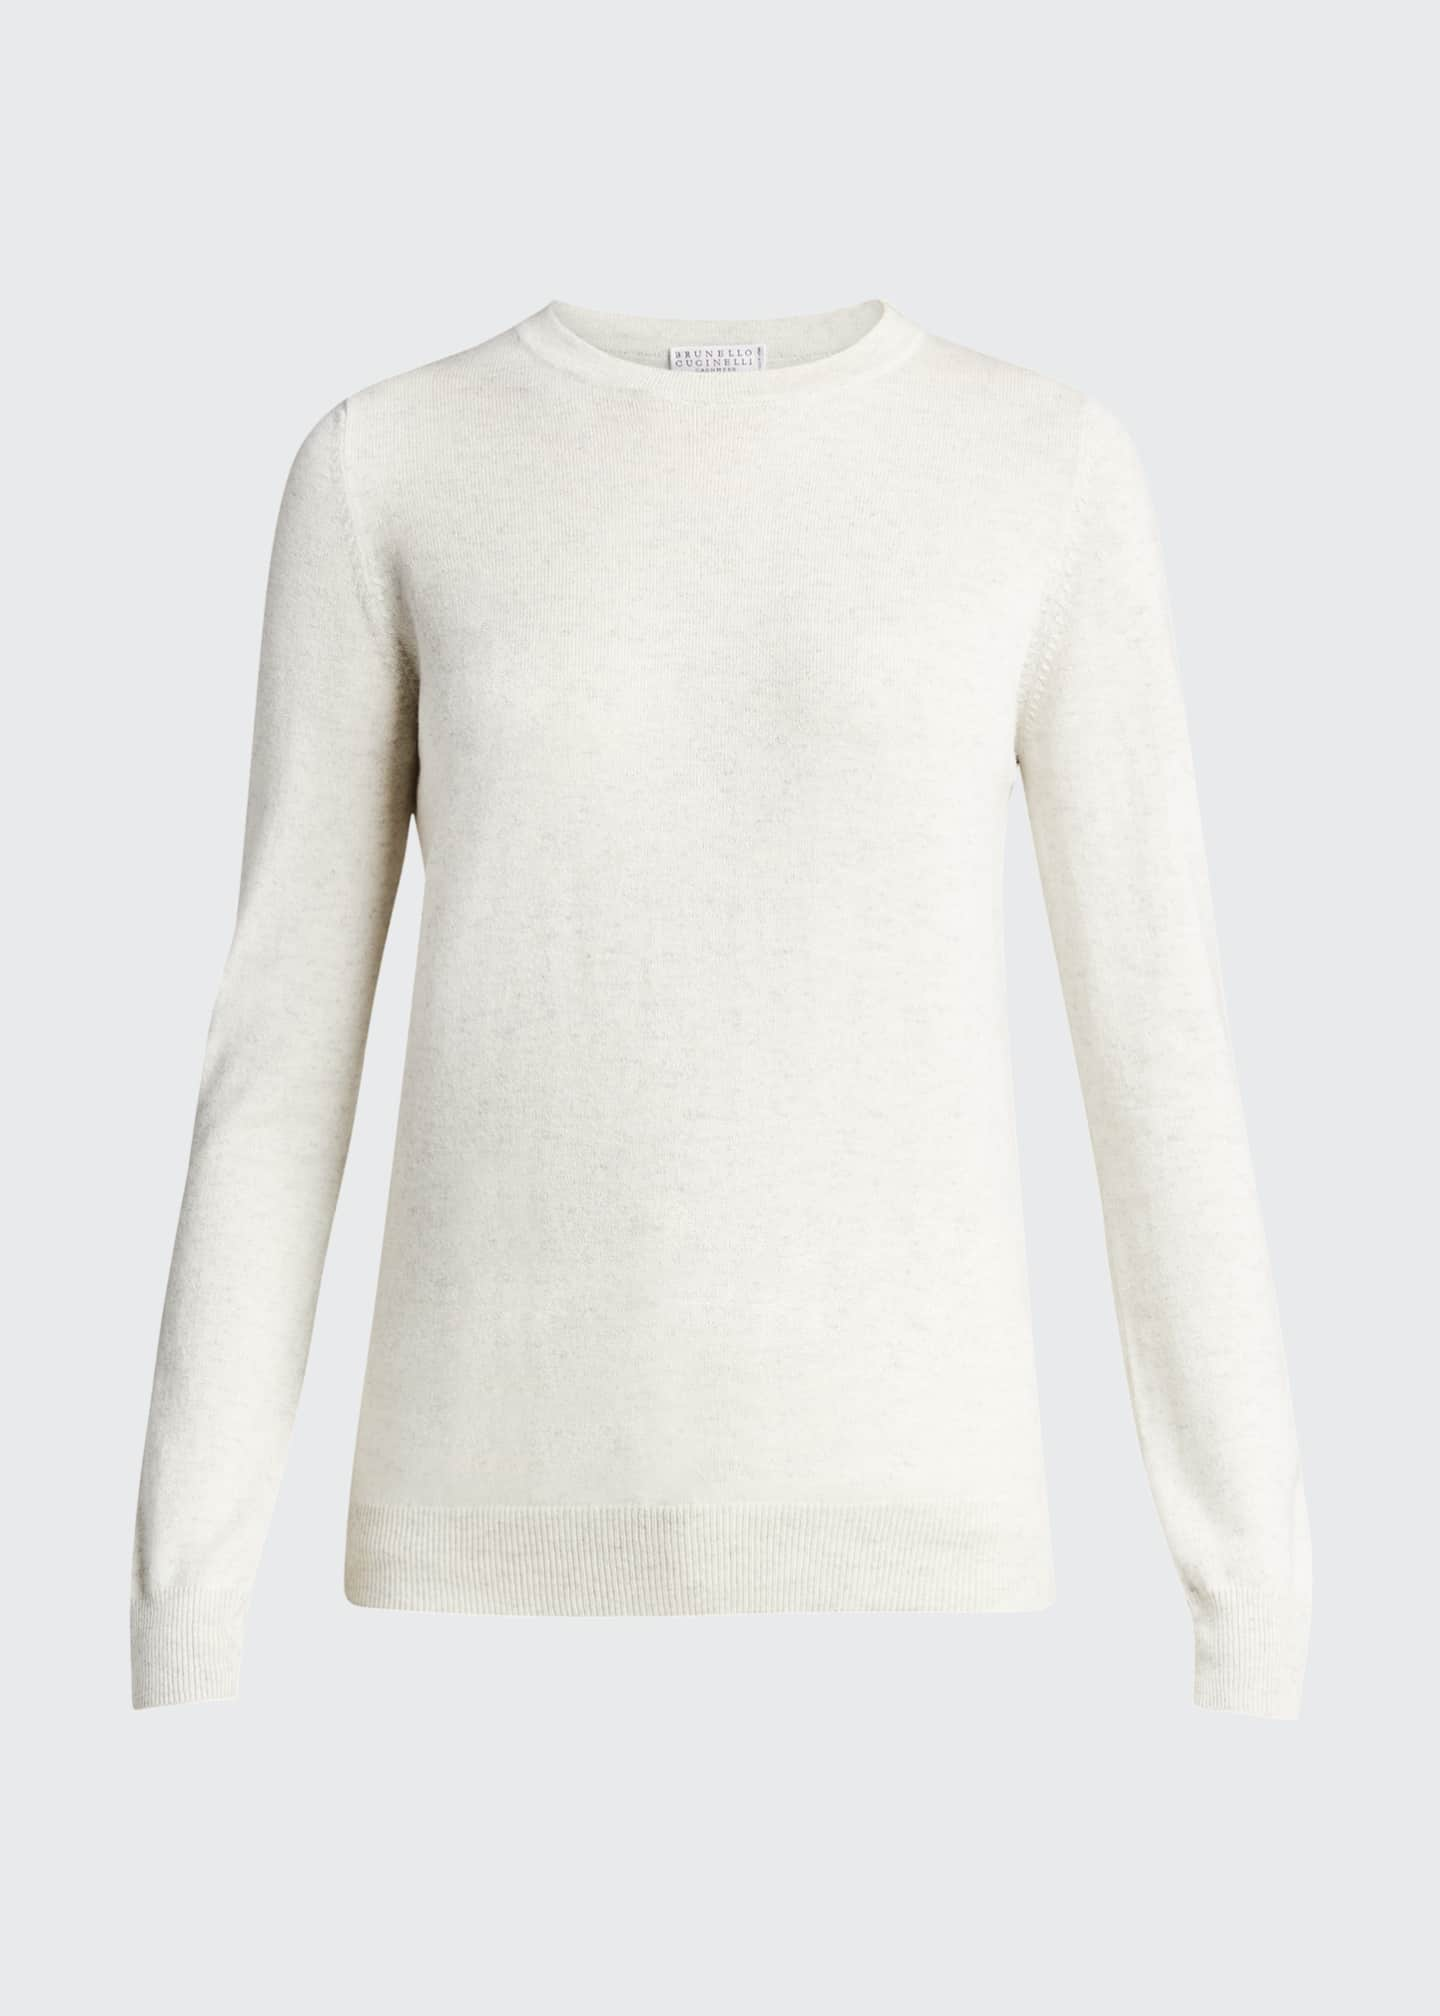 Image 5 of 5: Monili Cashmere Sweater